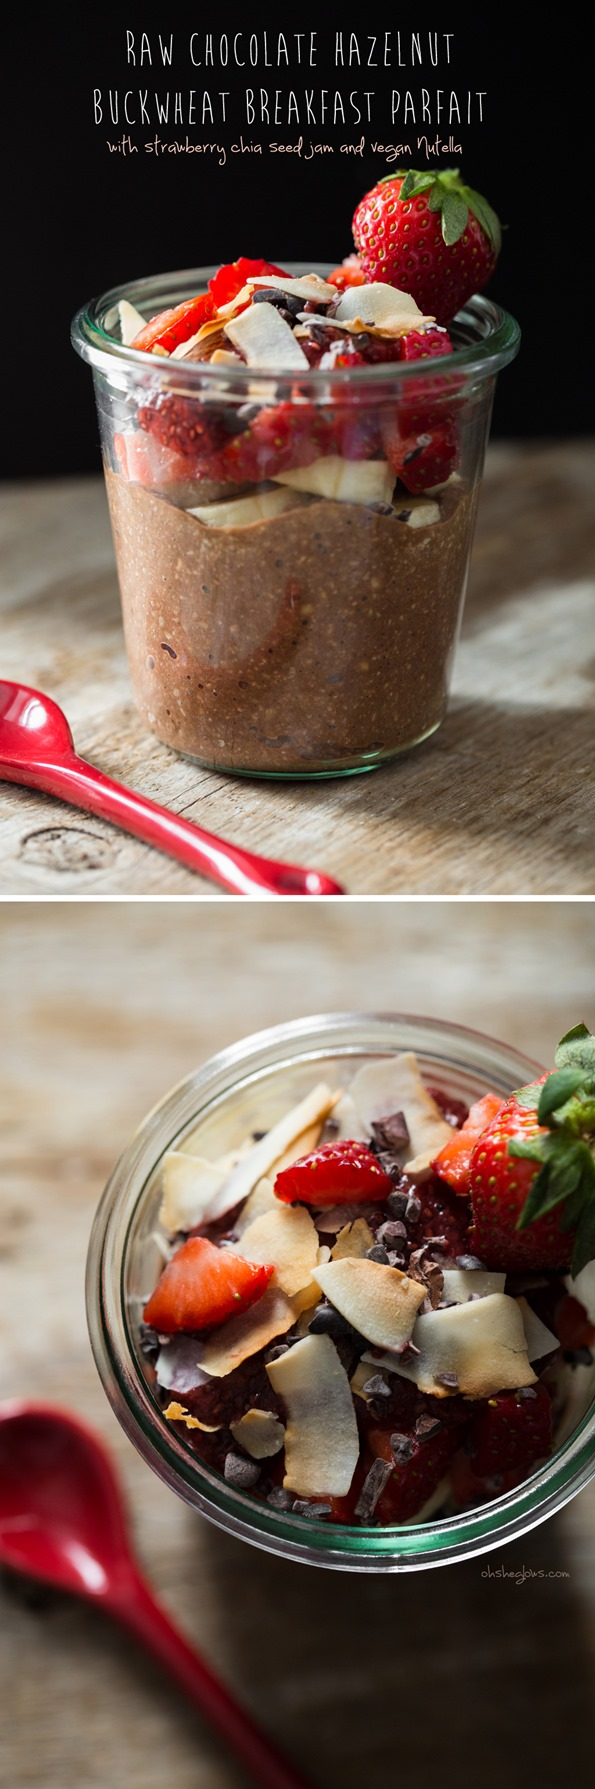 rawchocolatebuckwheatporridgeparfait   Raw Chocolate Hazelnut Breakfast Parfait + Book News